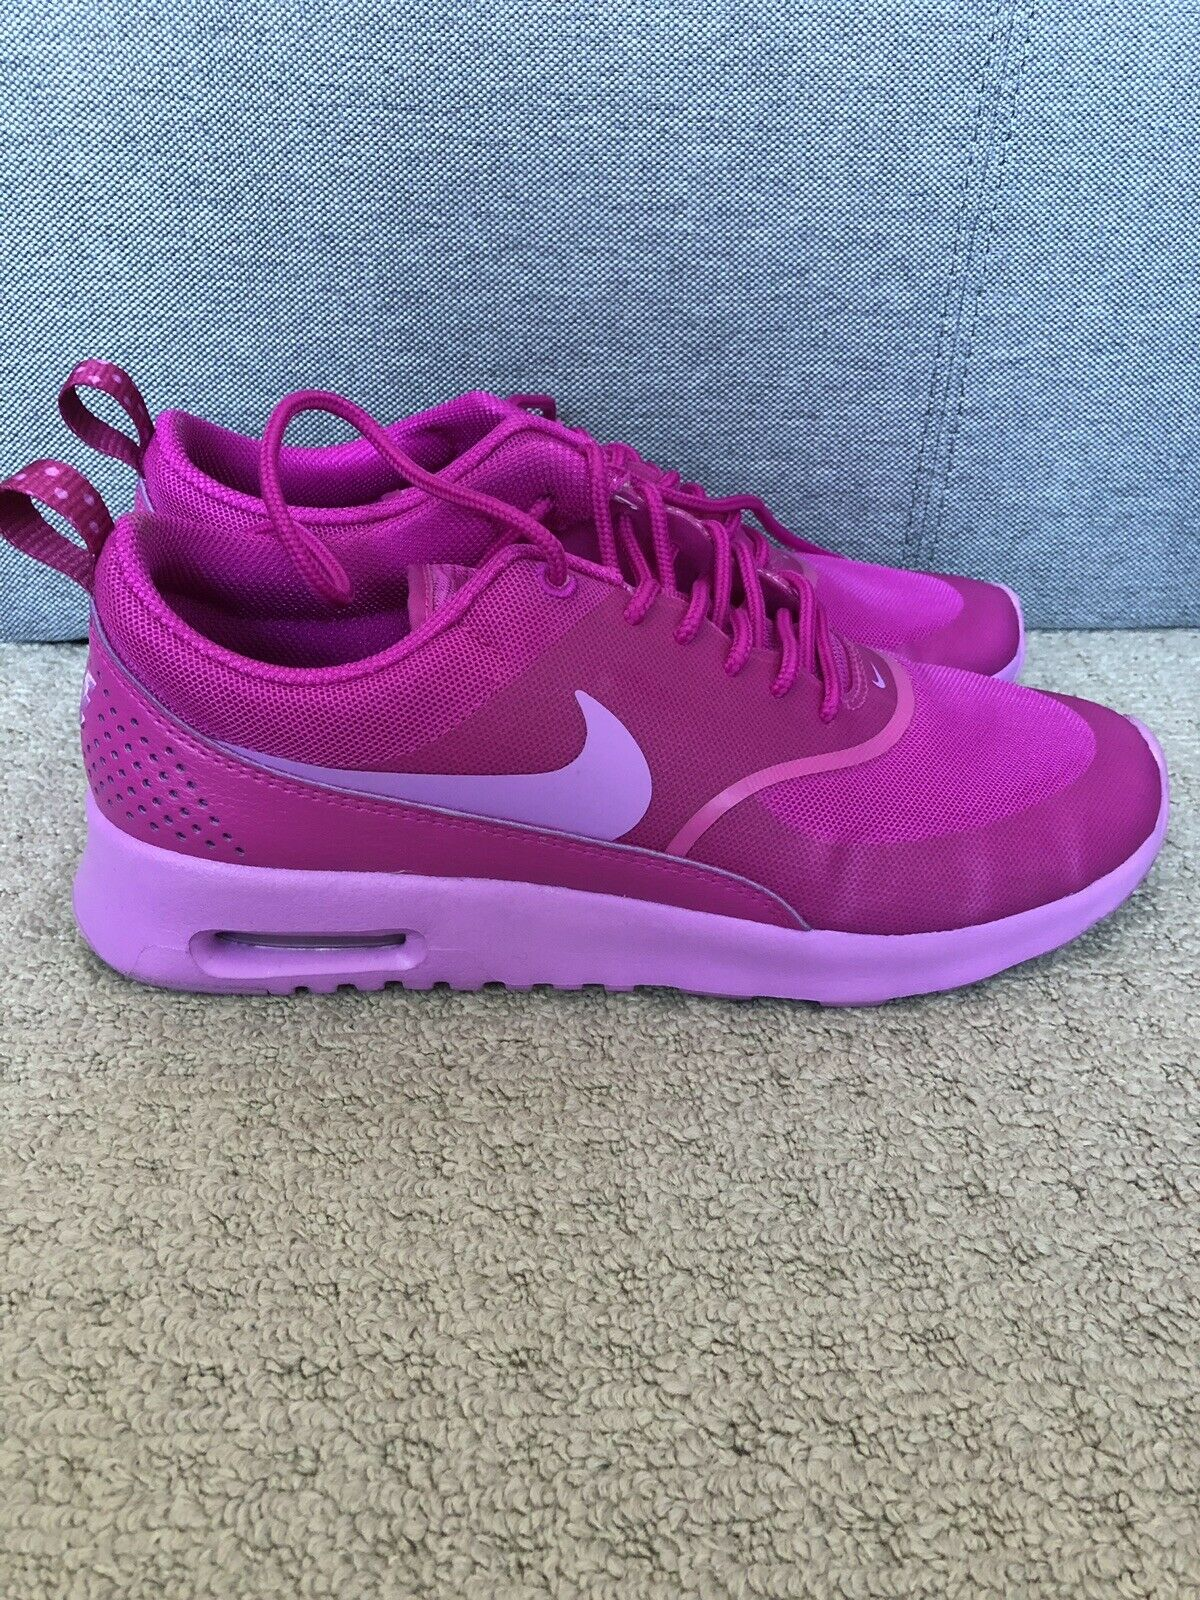 Nike Womens Purple Air Max Thea Trainers Size 6